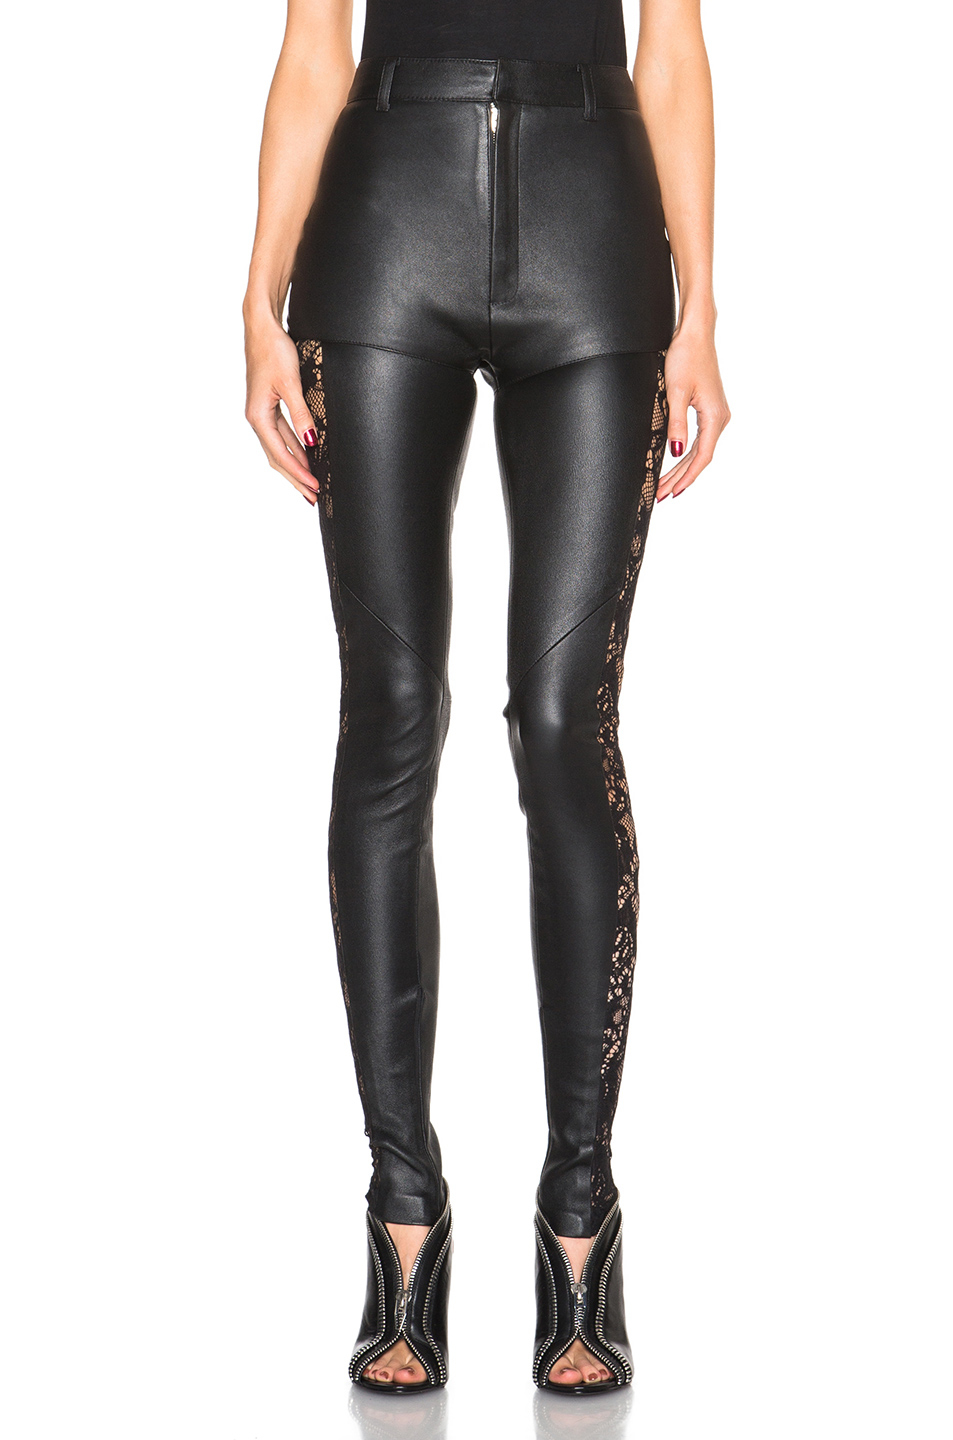 83aa091e34afa Gallery. Previously sold at: FORWARD · Women's Black Leather Pants ...